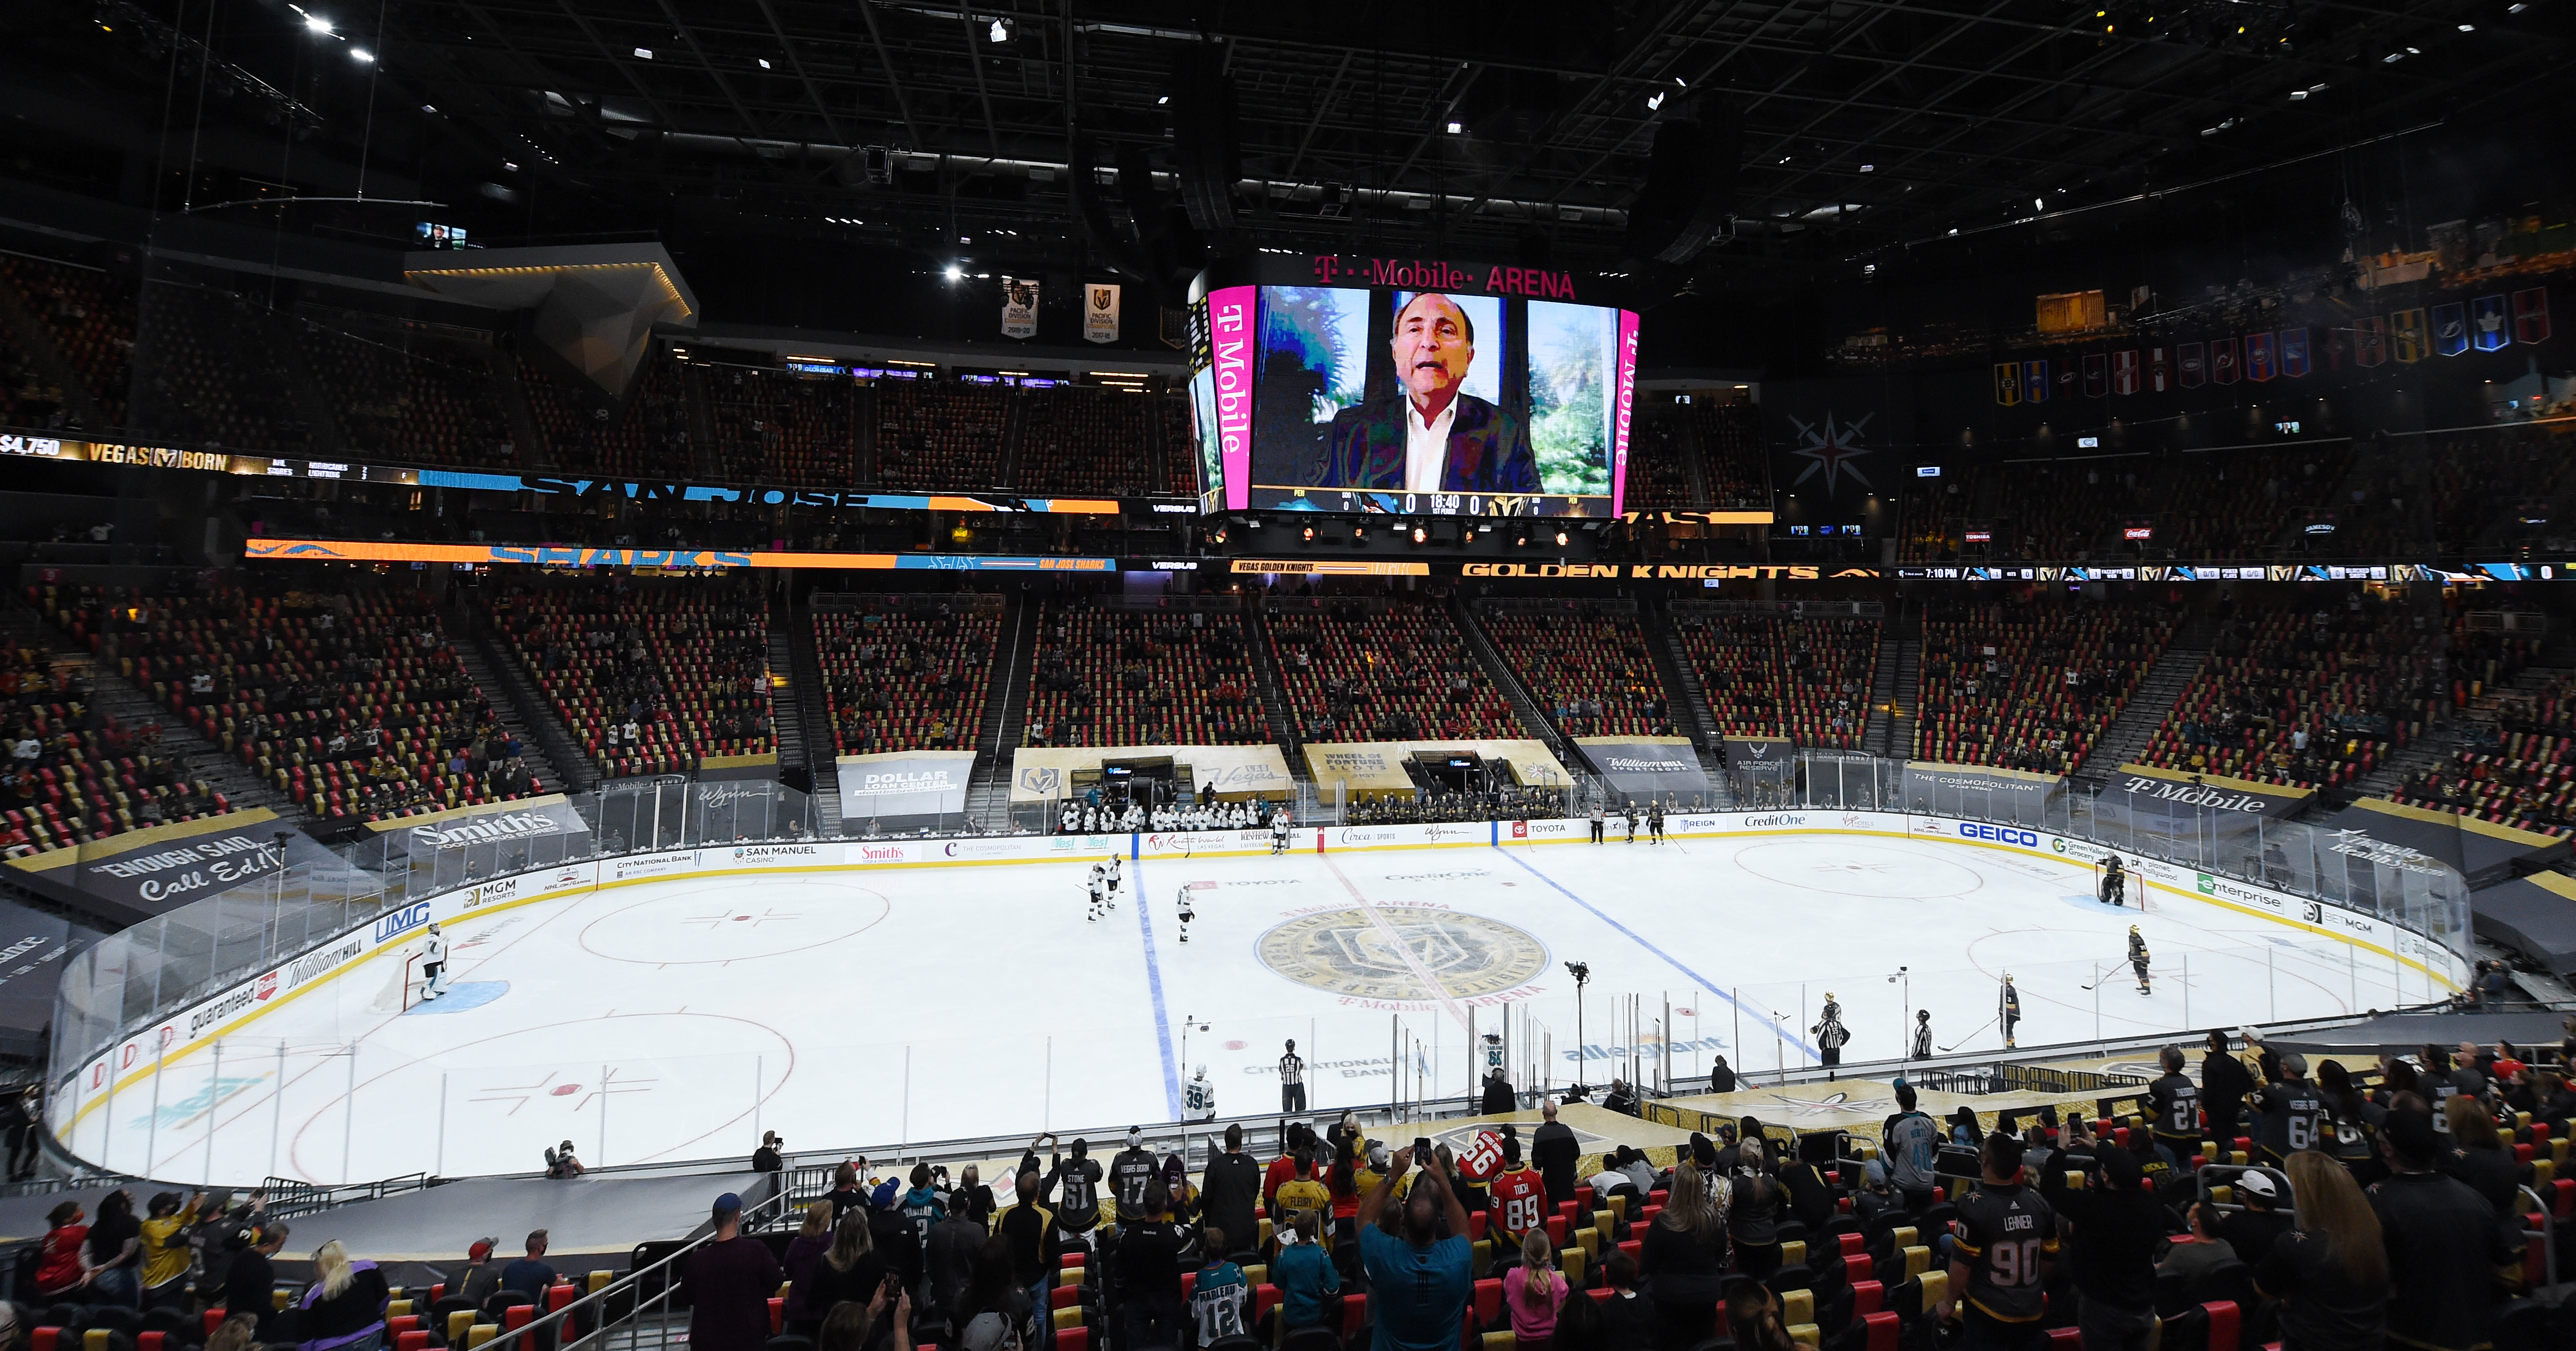 NHL Commissioner Gary Bettman is shown on a video honoring Patrick Marleau #12 of the San Jose Sharks during a break in the first period of a game against the Vegas Golden Knights, Marleau's 1,768th NHL game, at T-Mobile Arena on April 19, 2021 in Las Vegas, Nevada.